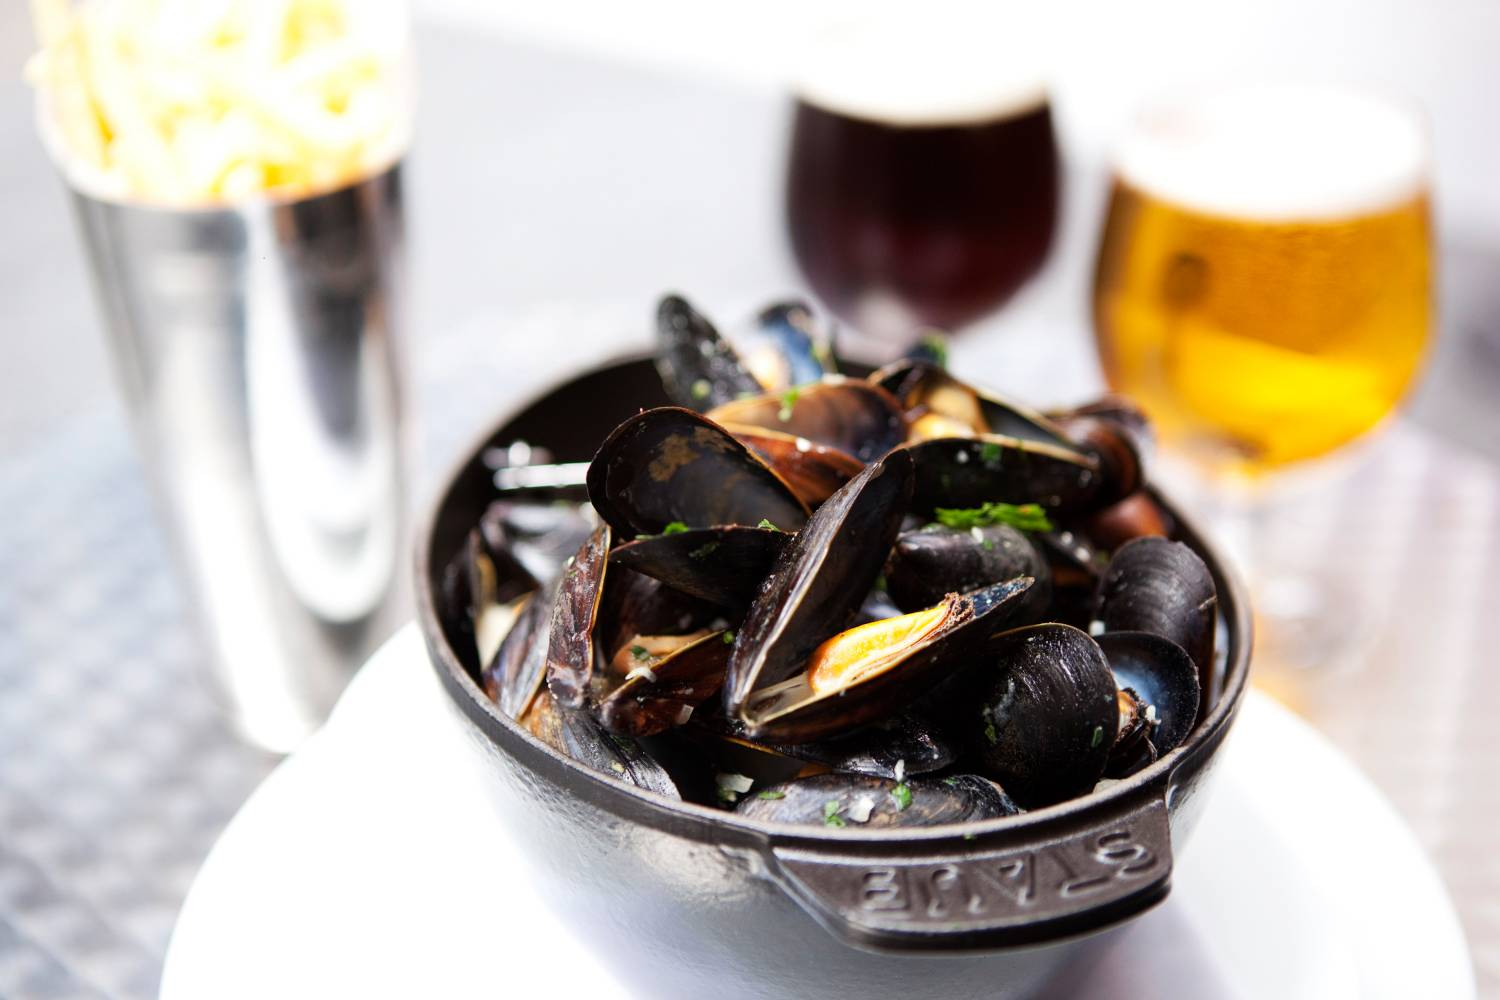 moules-frites at The Beer Bar